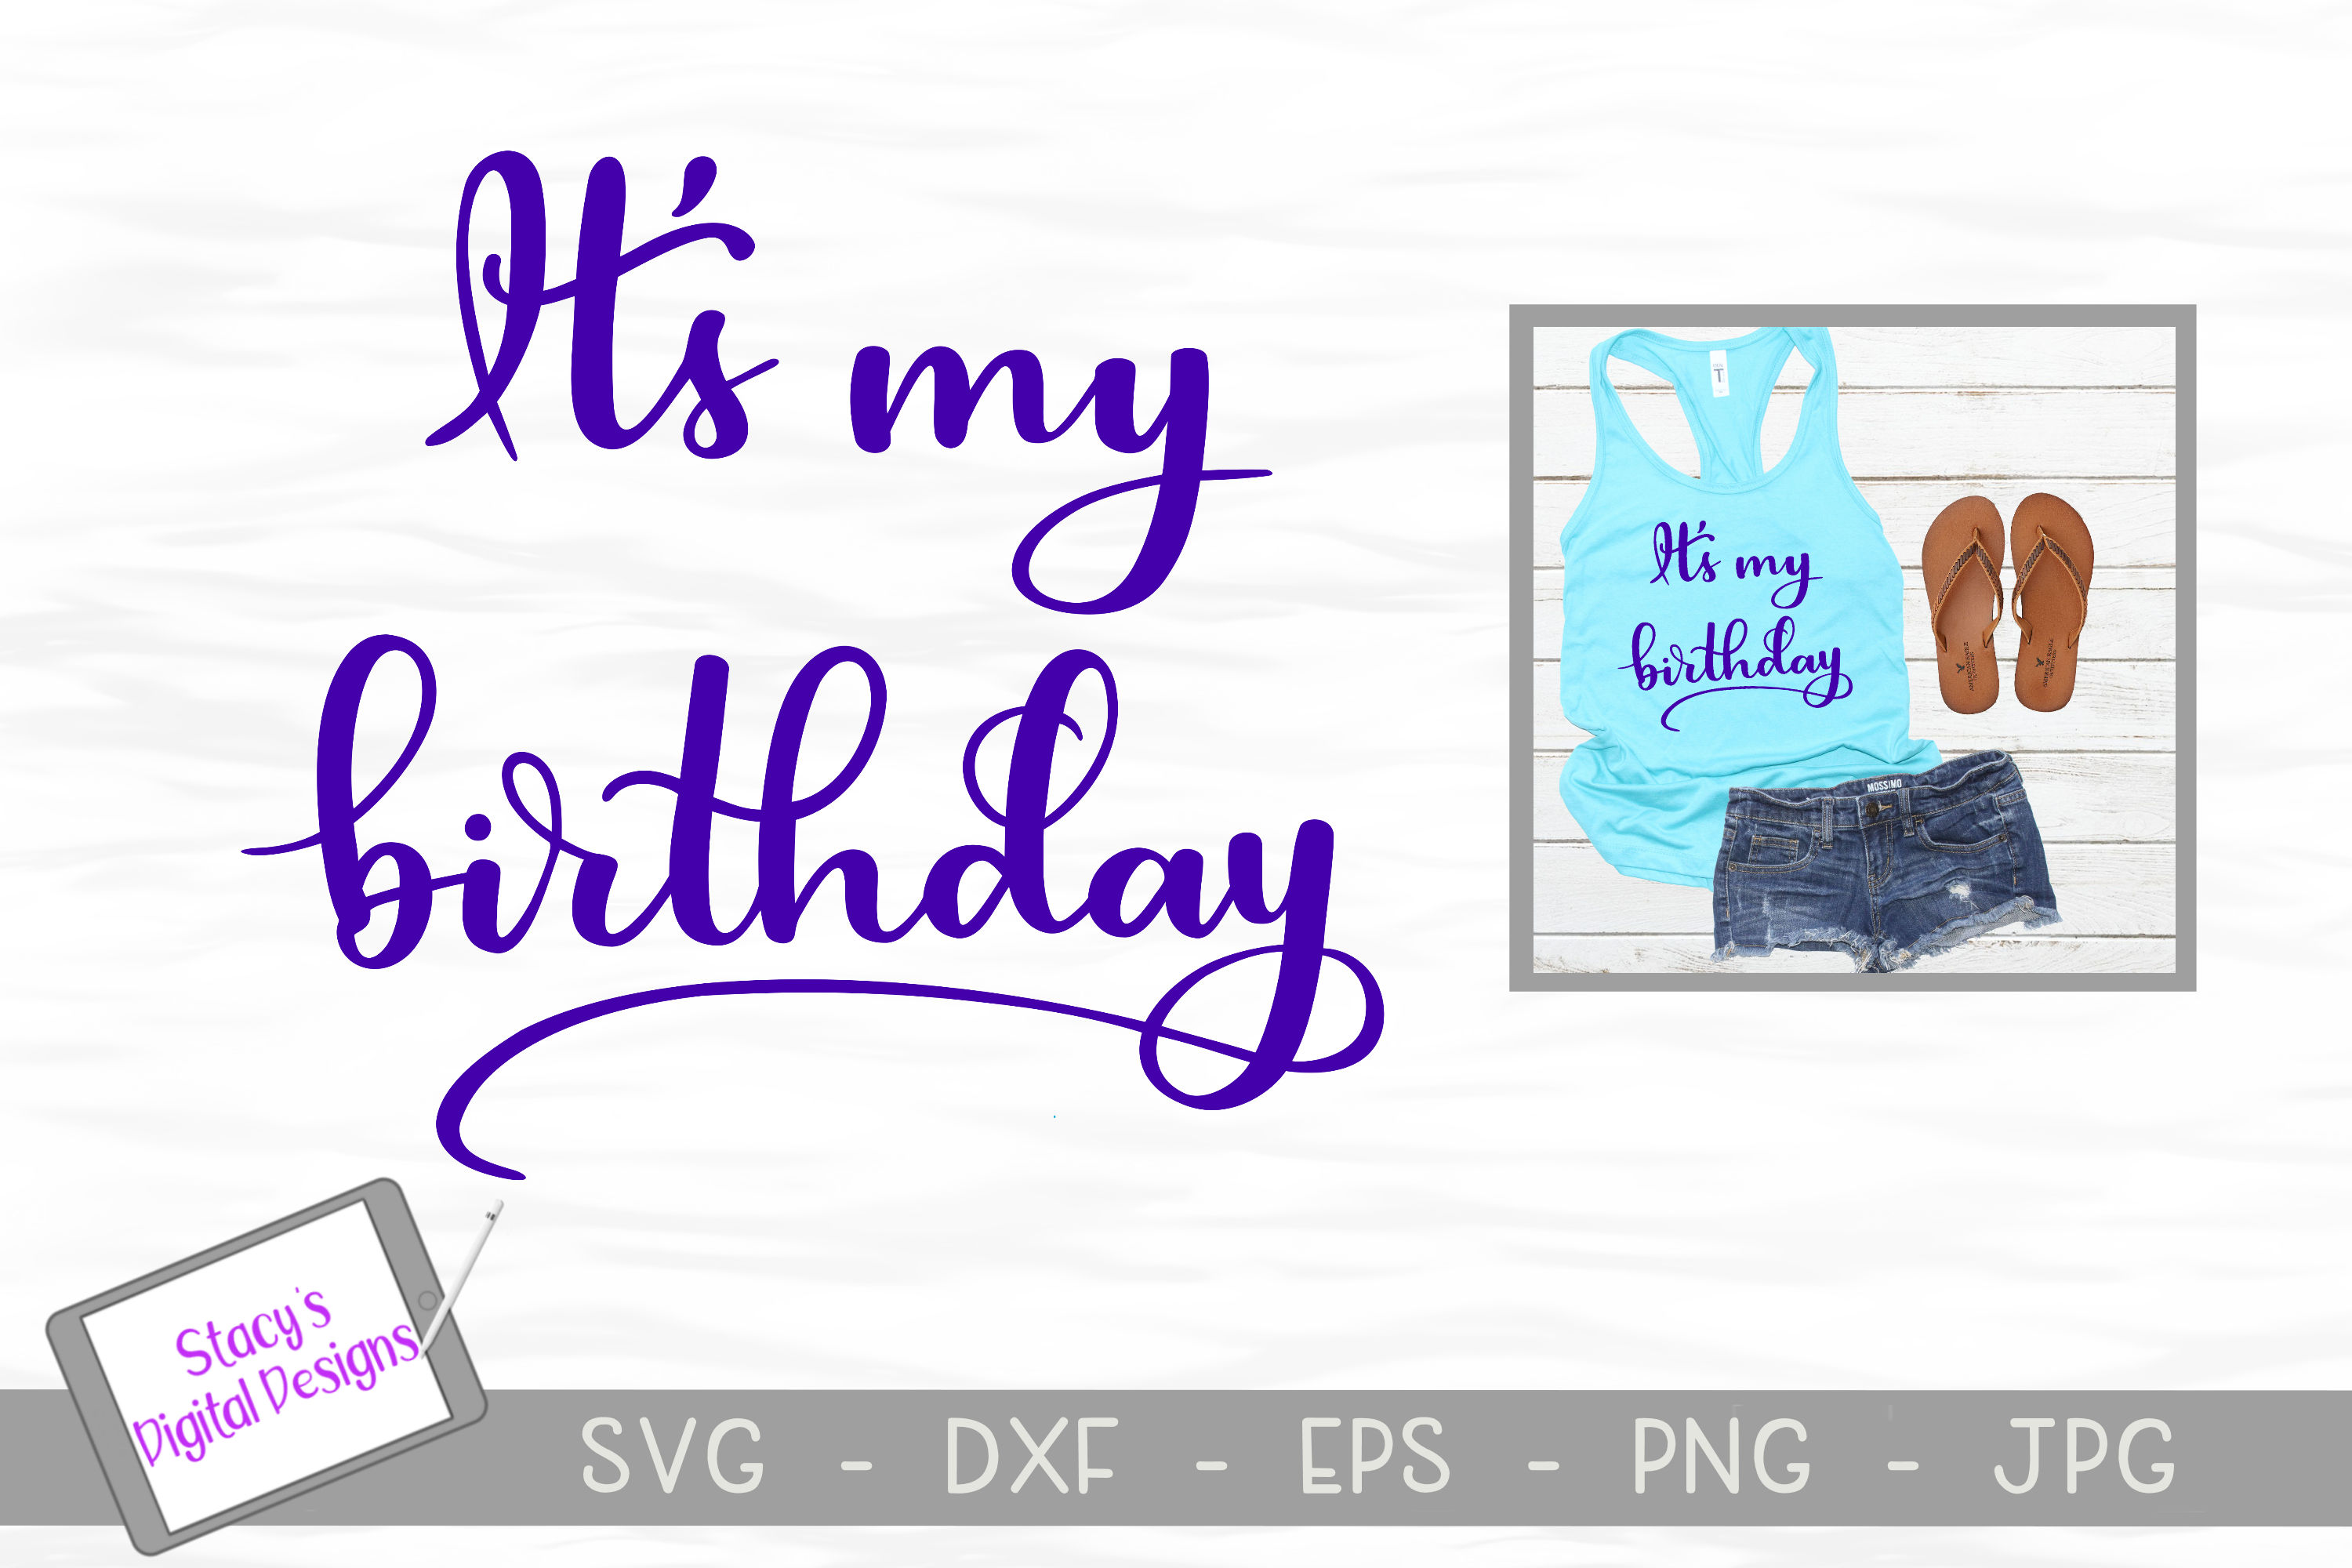 Birthday SVG - It's my birthday cut file, Handlettered example image 1